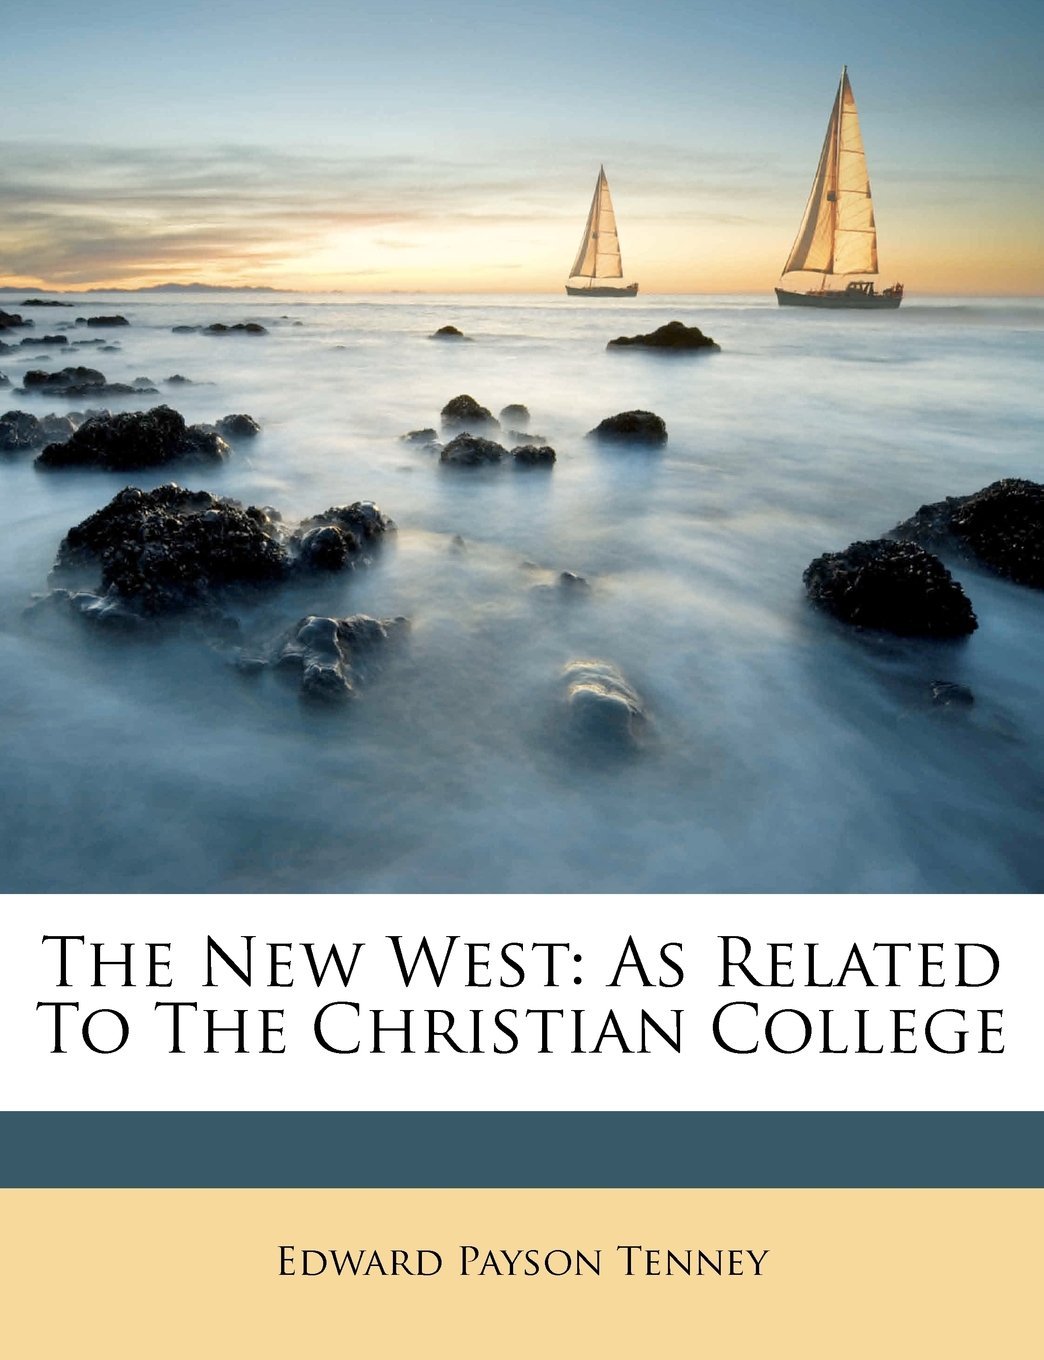 Download The New West: As Related To The Christian College ebook